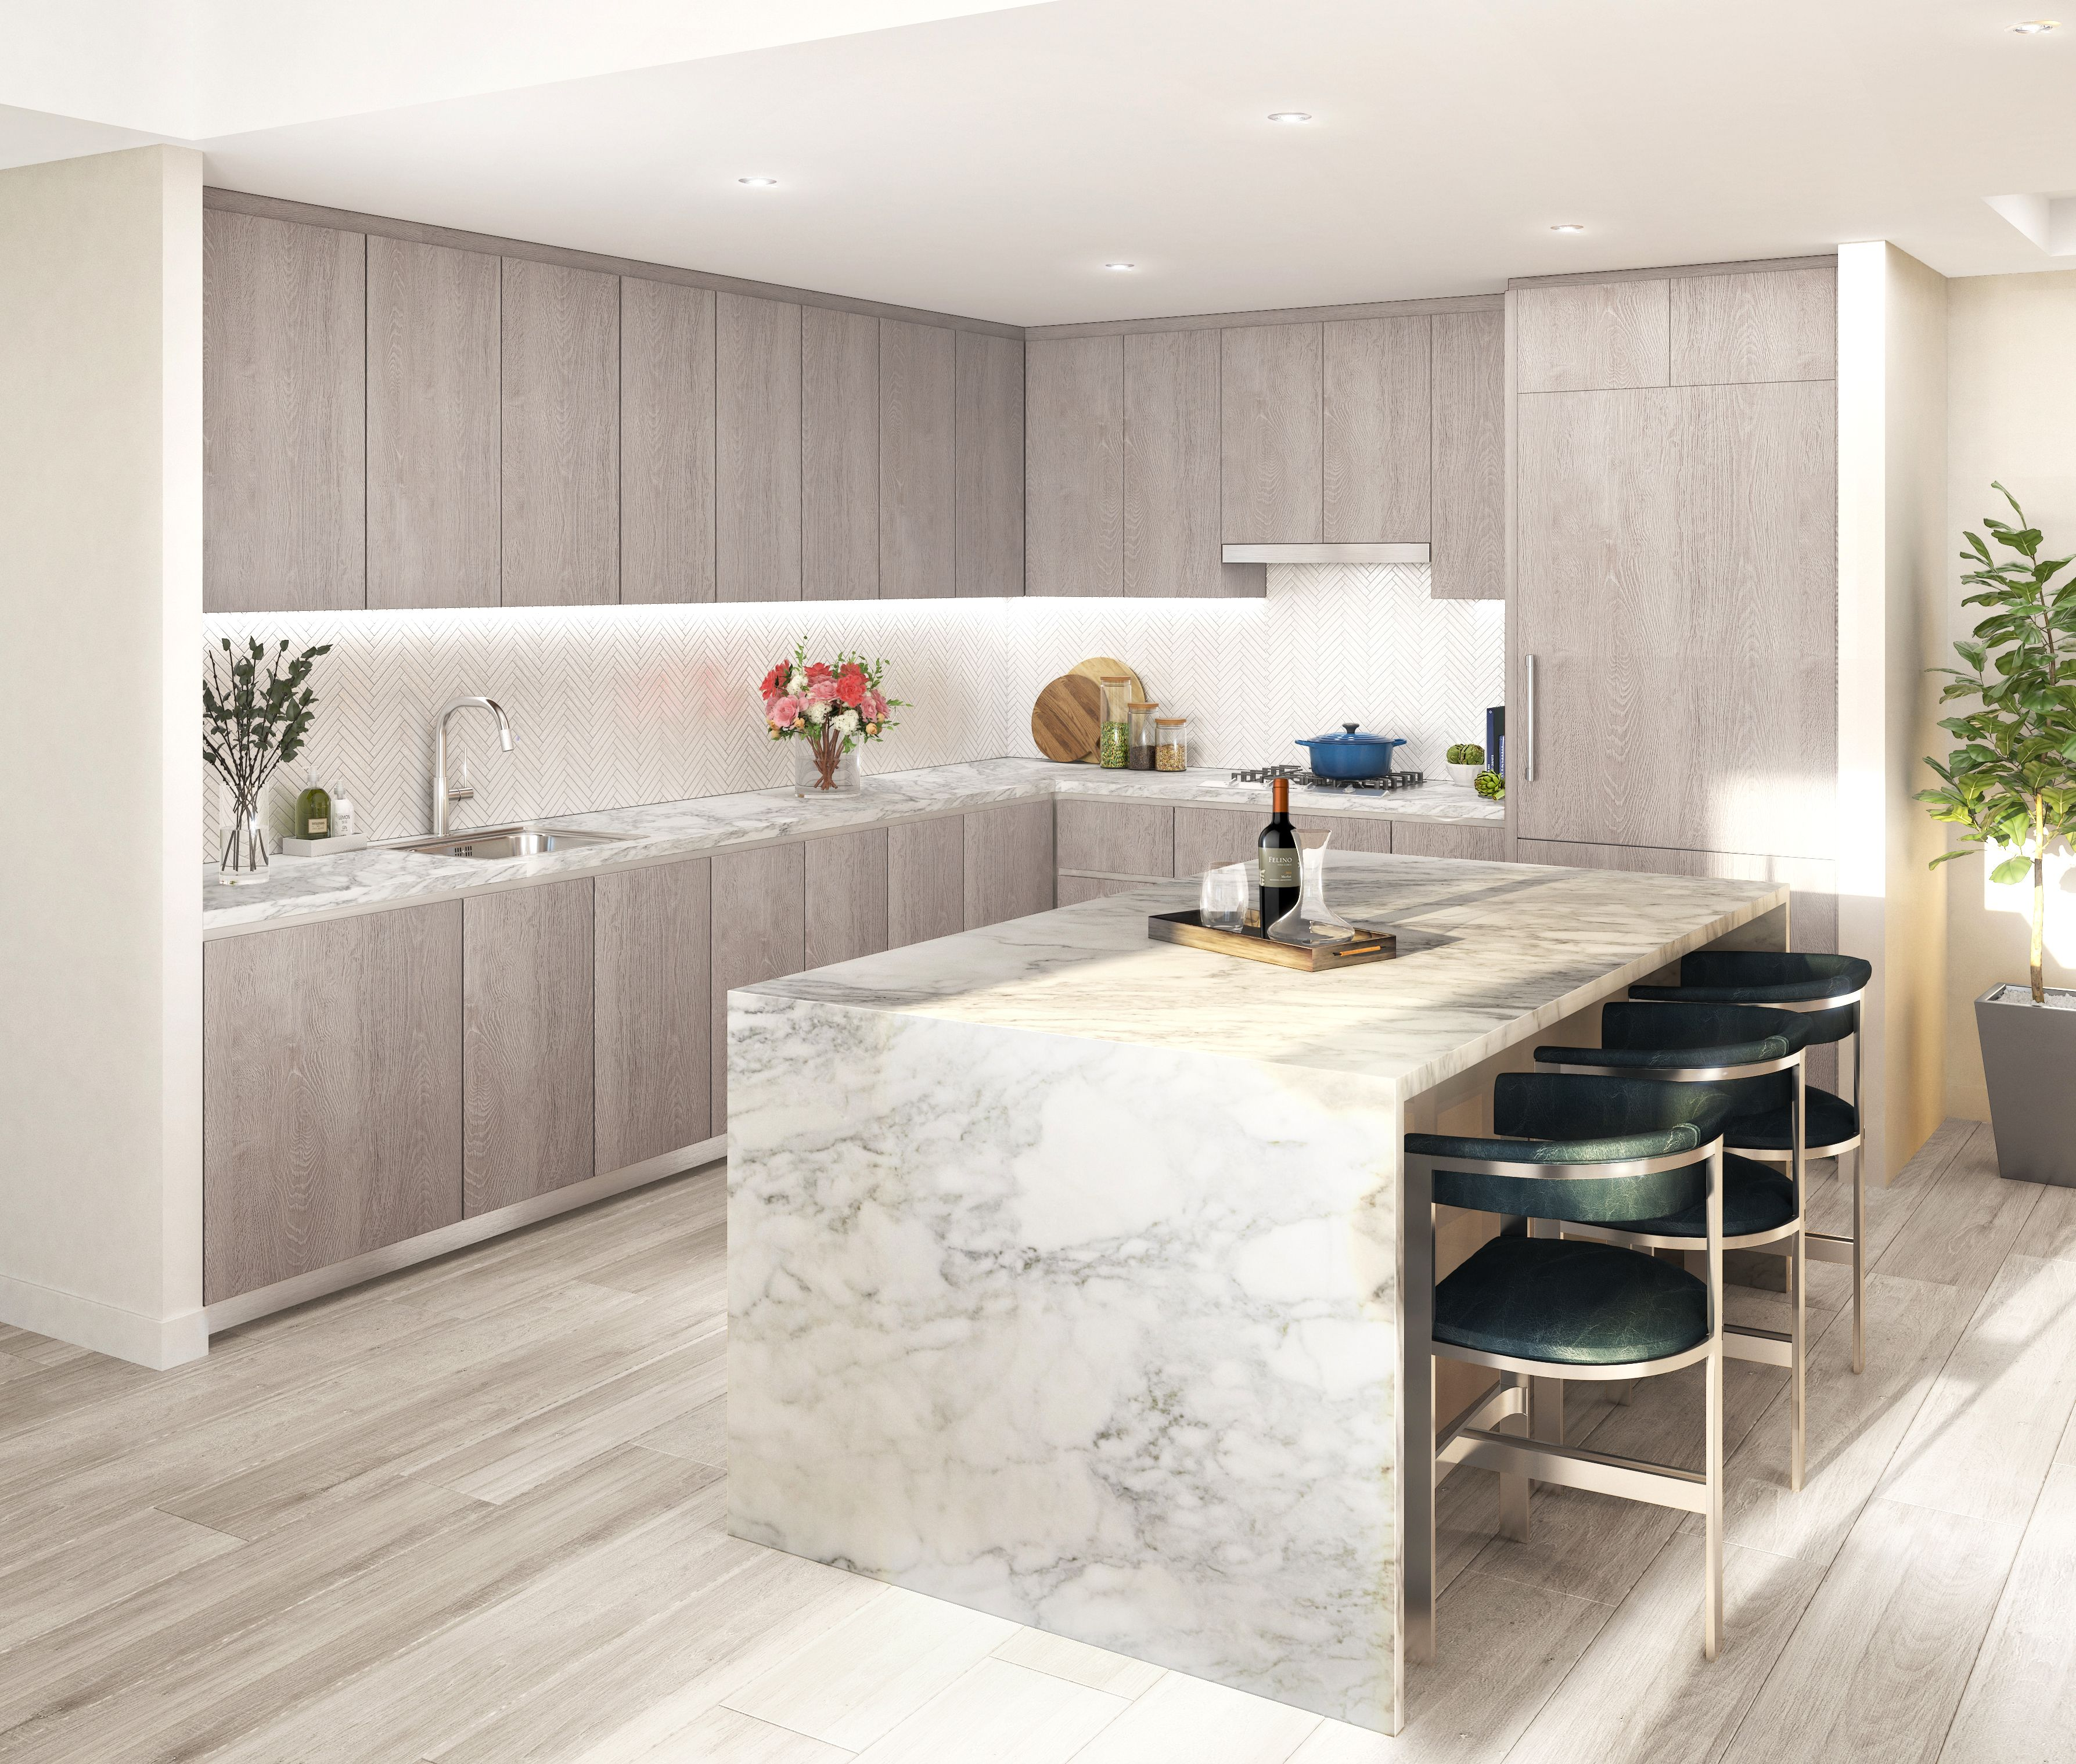 Kitchen featured in the Residence D6 By MUSE in Washington, VA